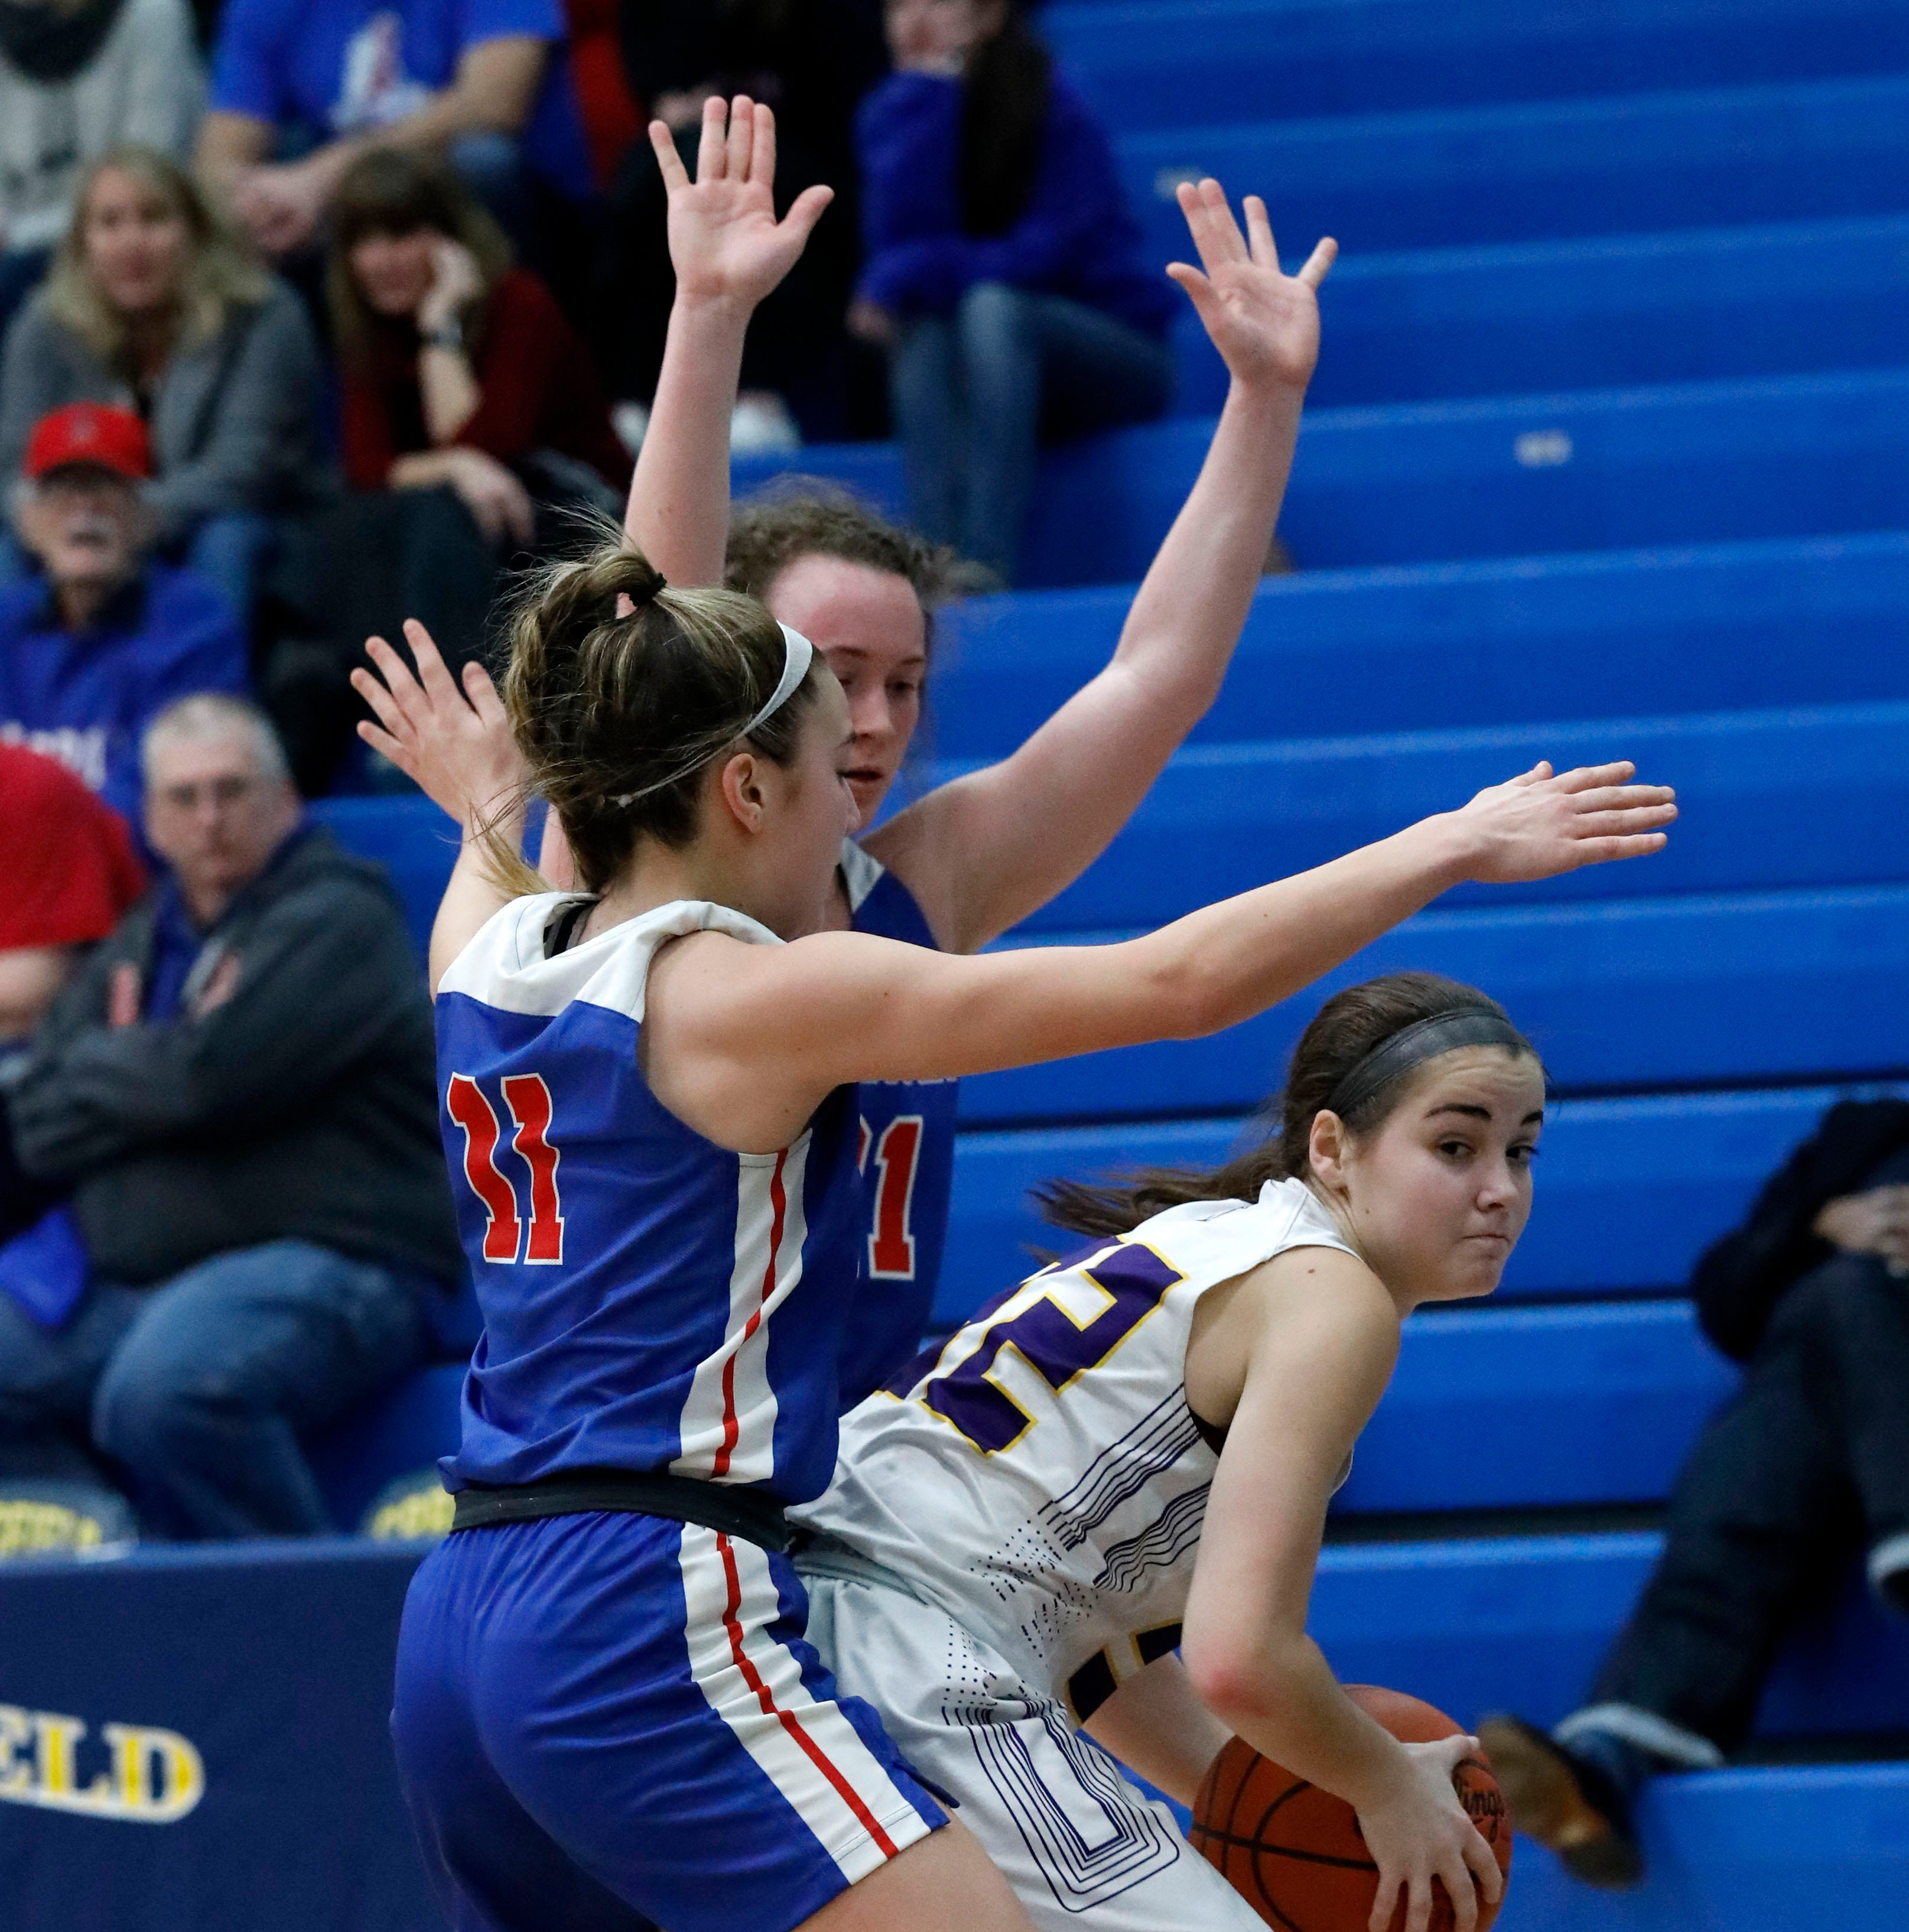 Bloom-Carroll rally falls short against top team in the state